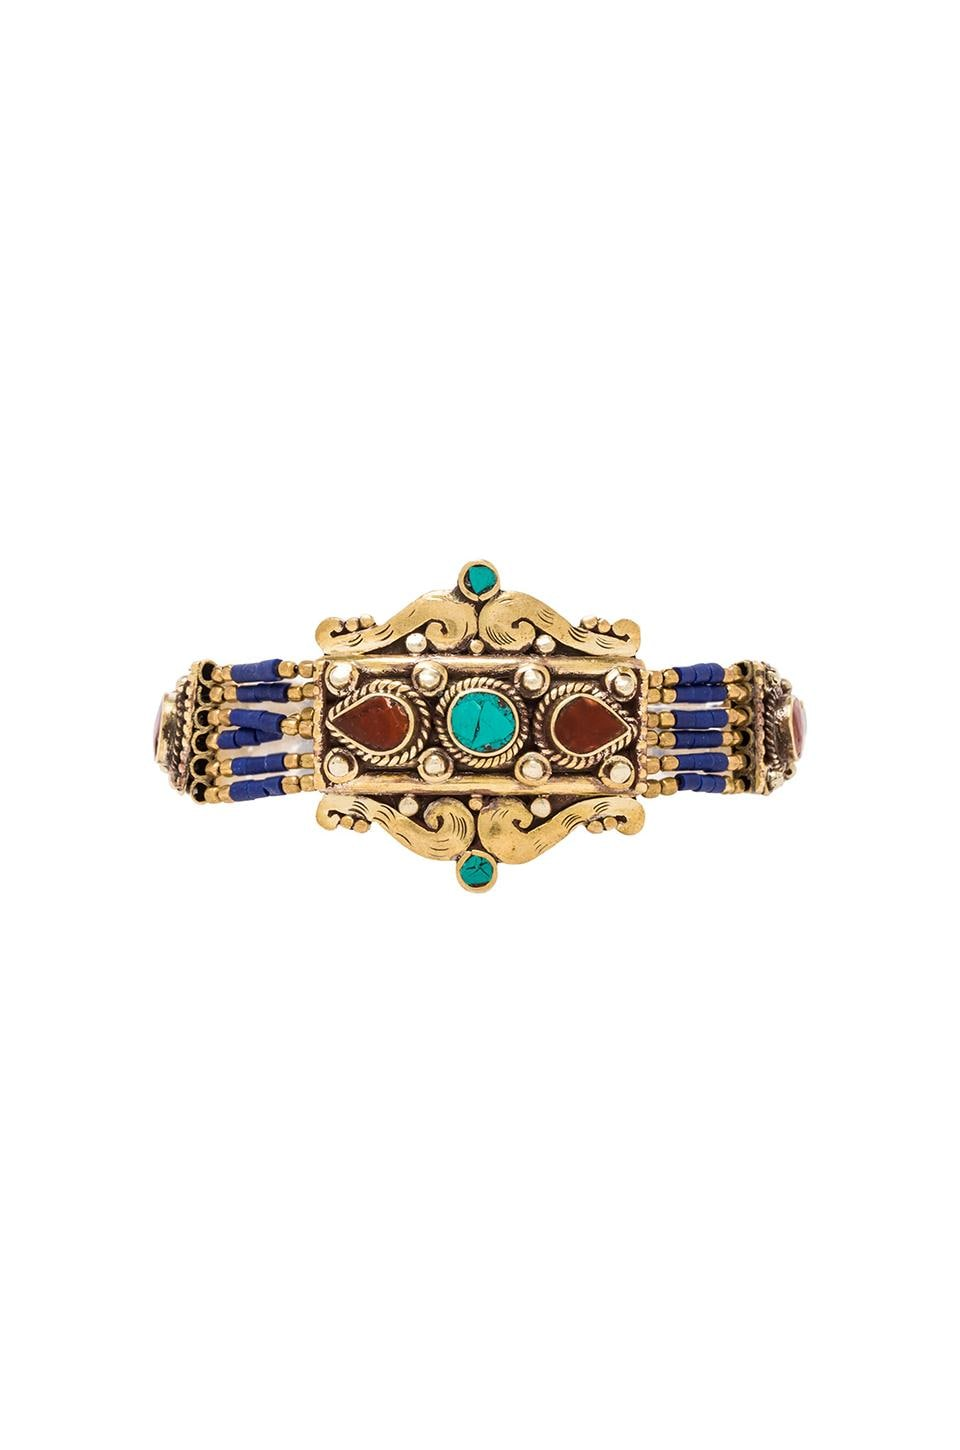 Natalie B Jewelry Navajo Bracelet in Multi